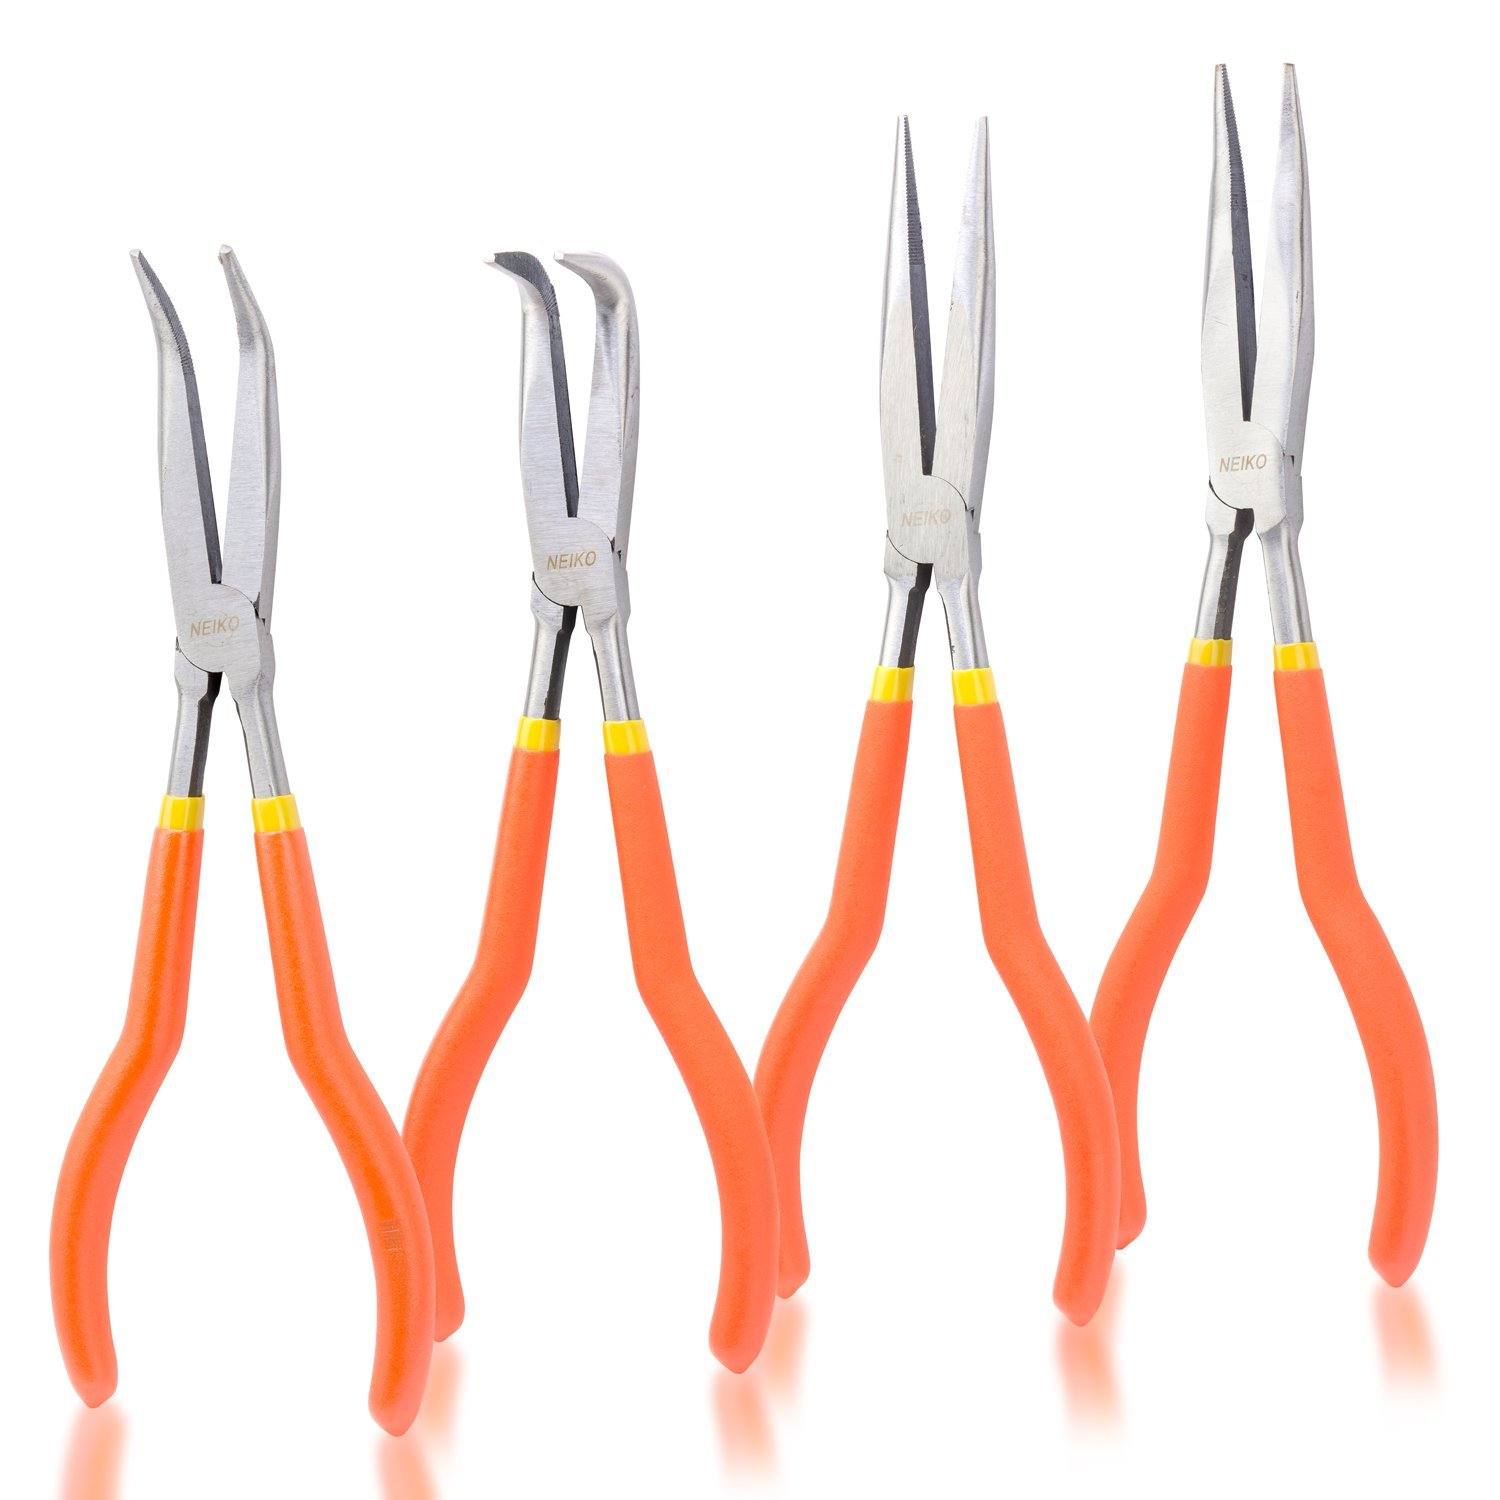 Neiko 02105A 11'' Long Nose Plier Kit with Soft Grip, 4 Piece